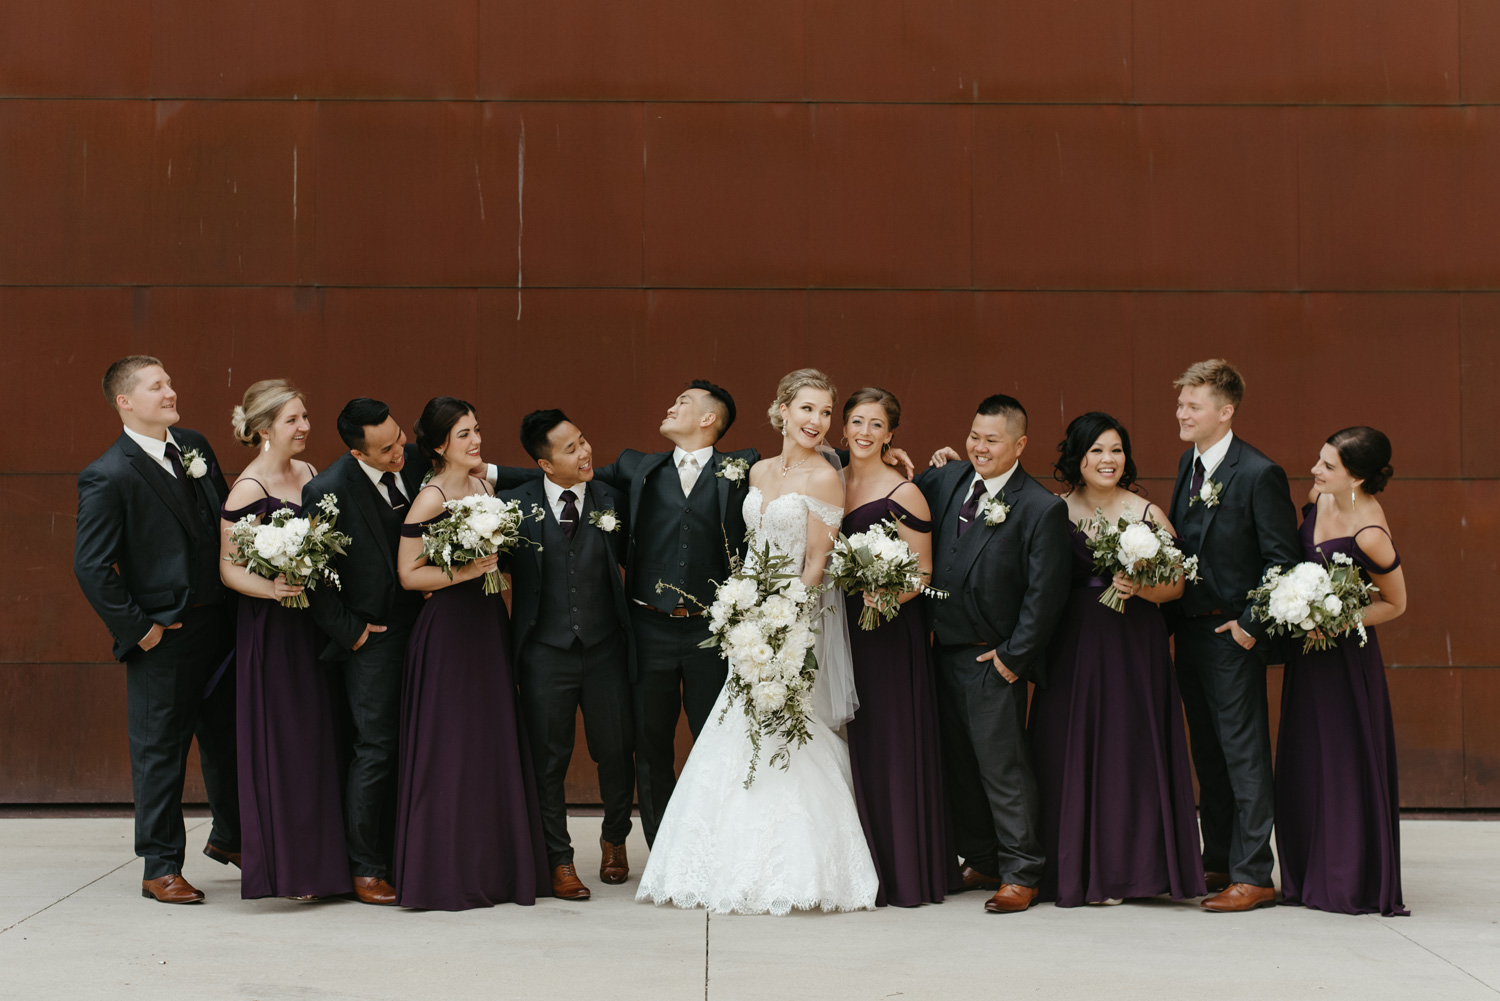 Portraits of wedding party in front of rusted wall